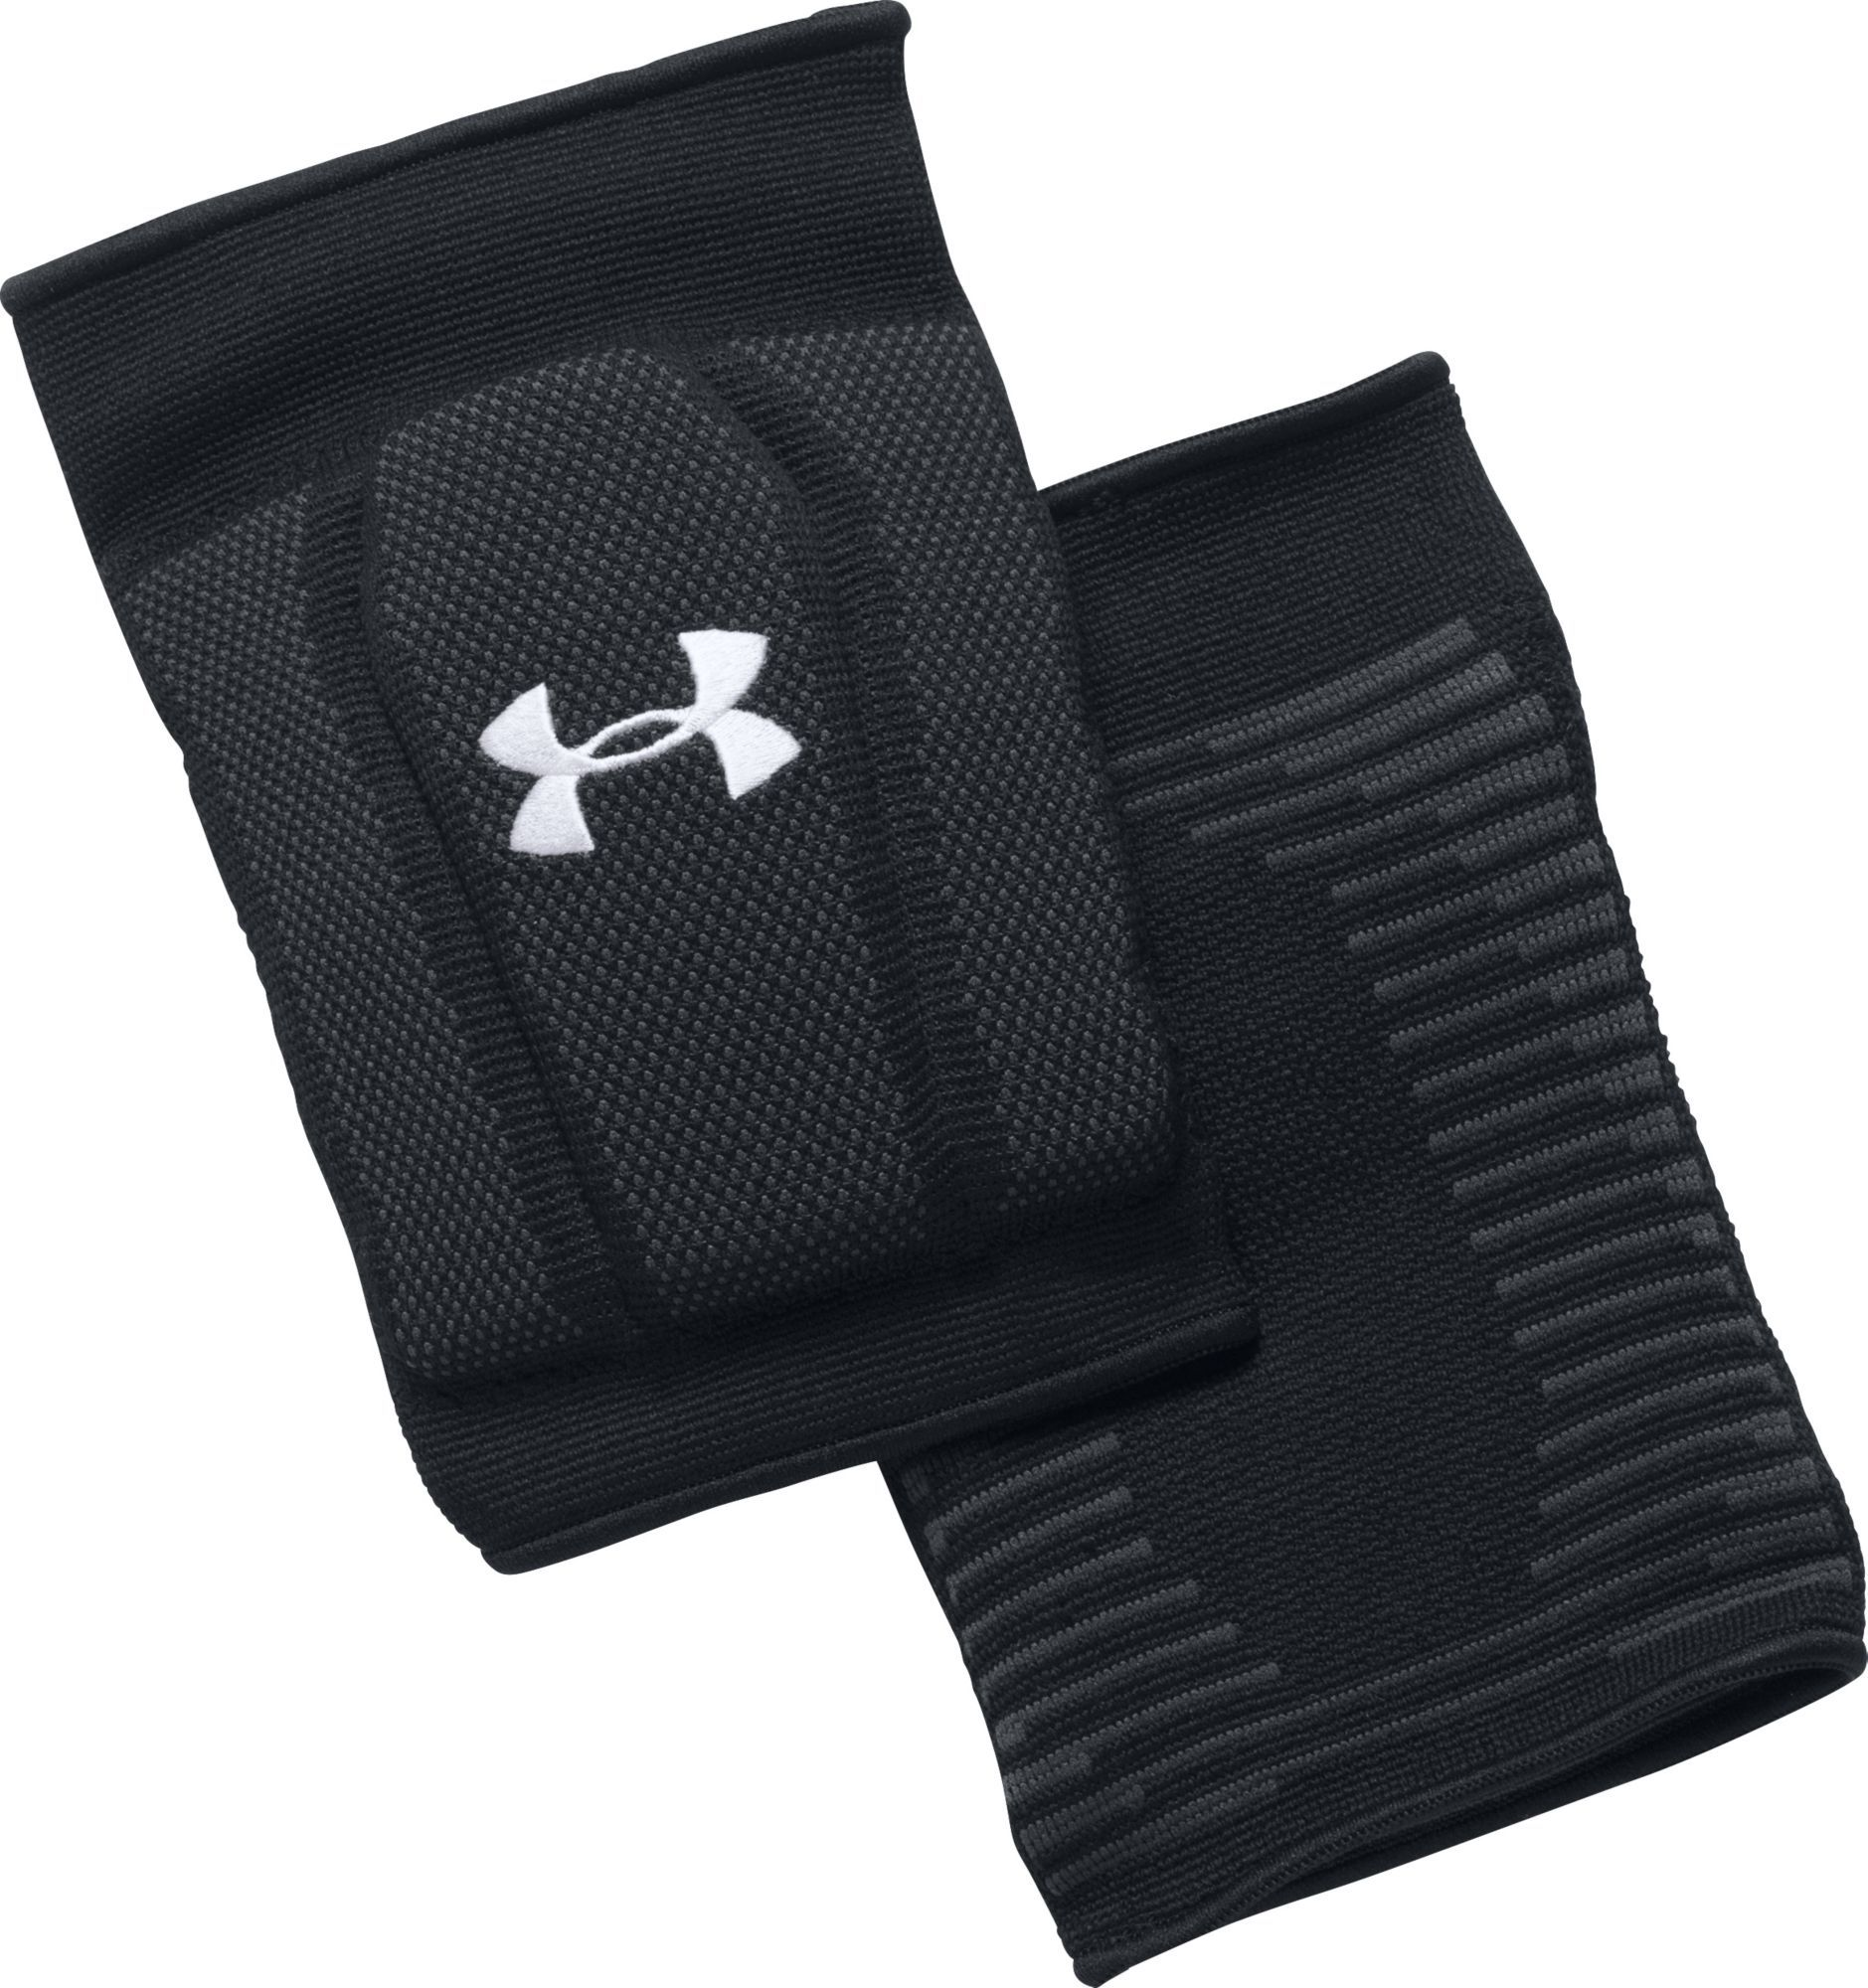 Under Armour Youth 2 0 Volleyball Knee Pads Volleyball Knee Pads Under Armour Knee Pads